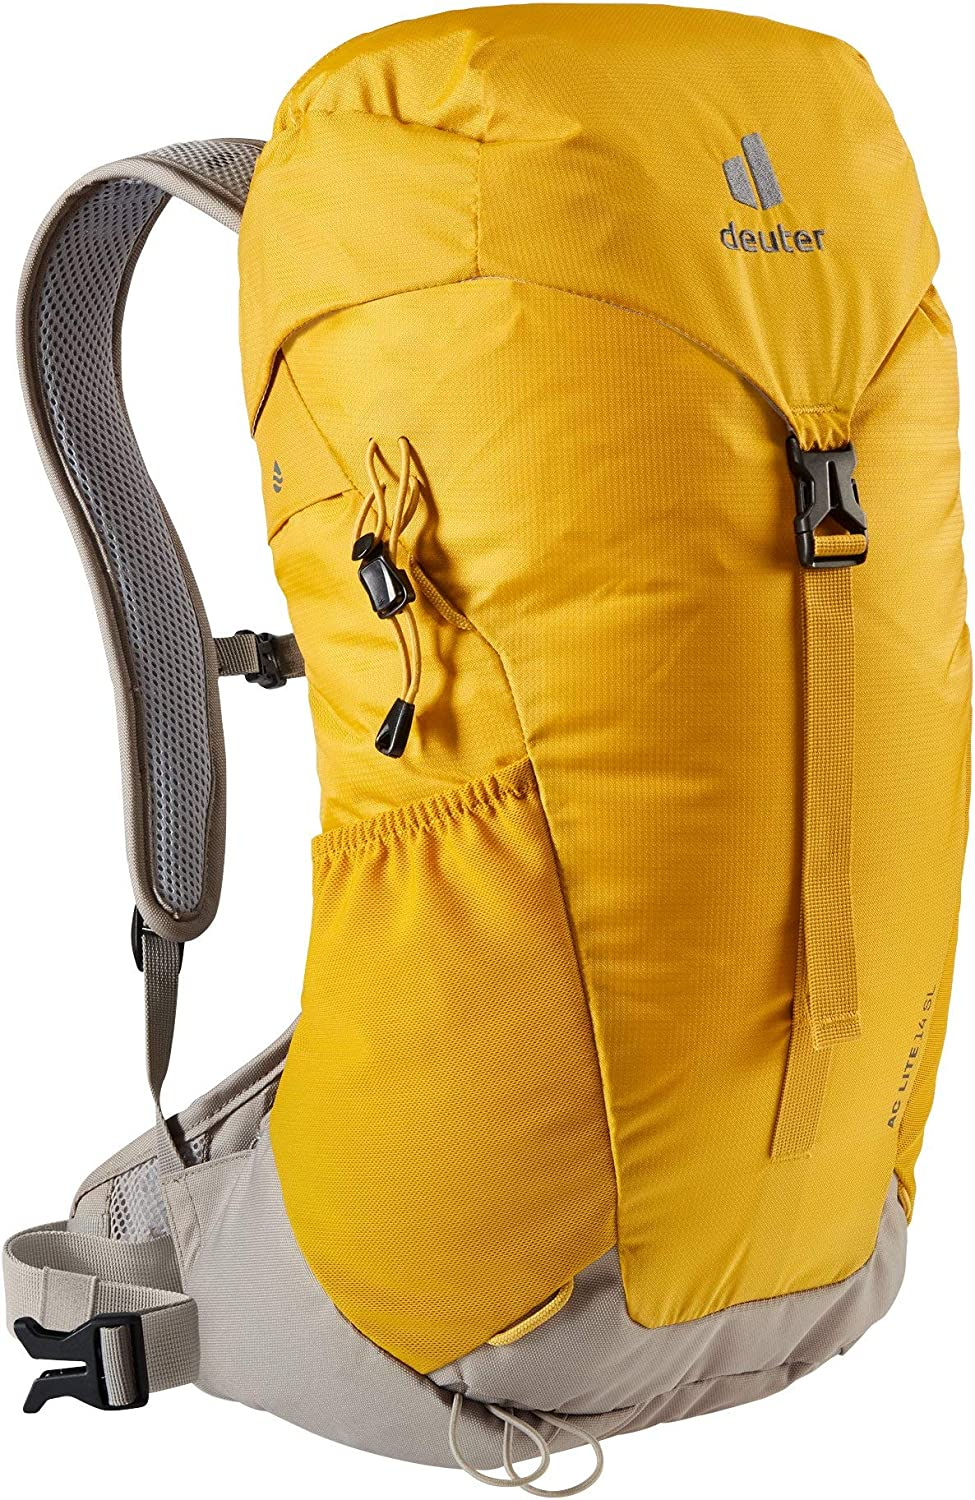 Deuter Women's Ac Lite Hiking Backpack Sl 14 Baltimore Mall Free Shipping New